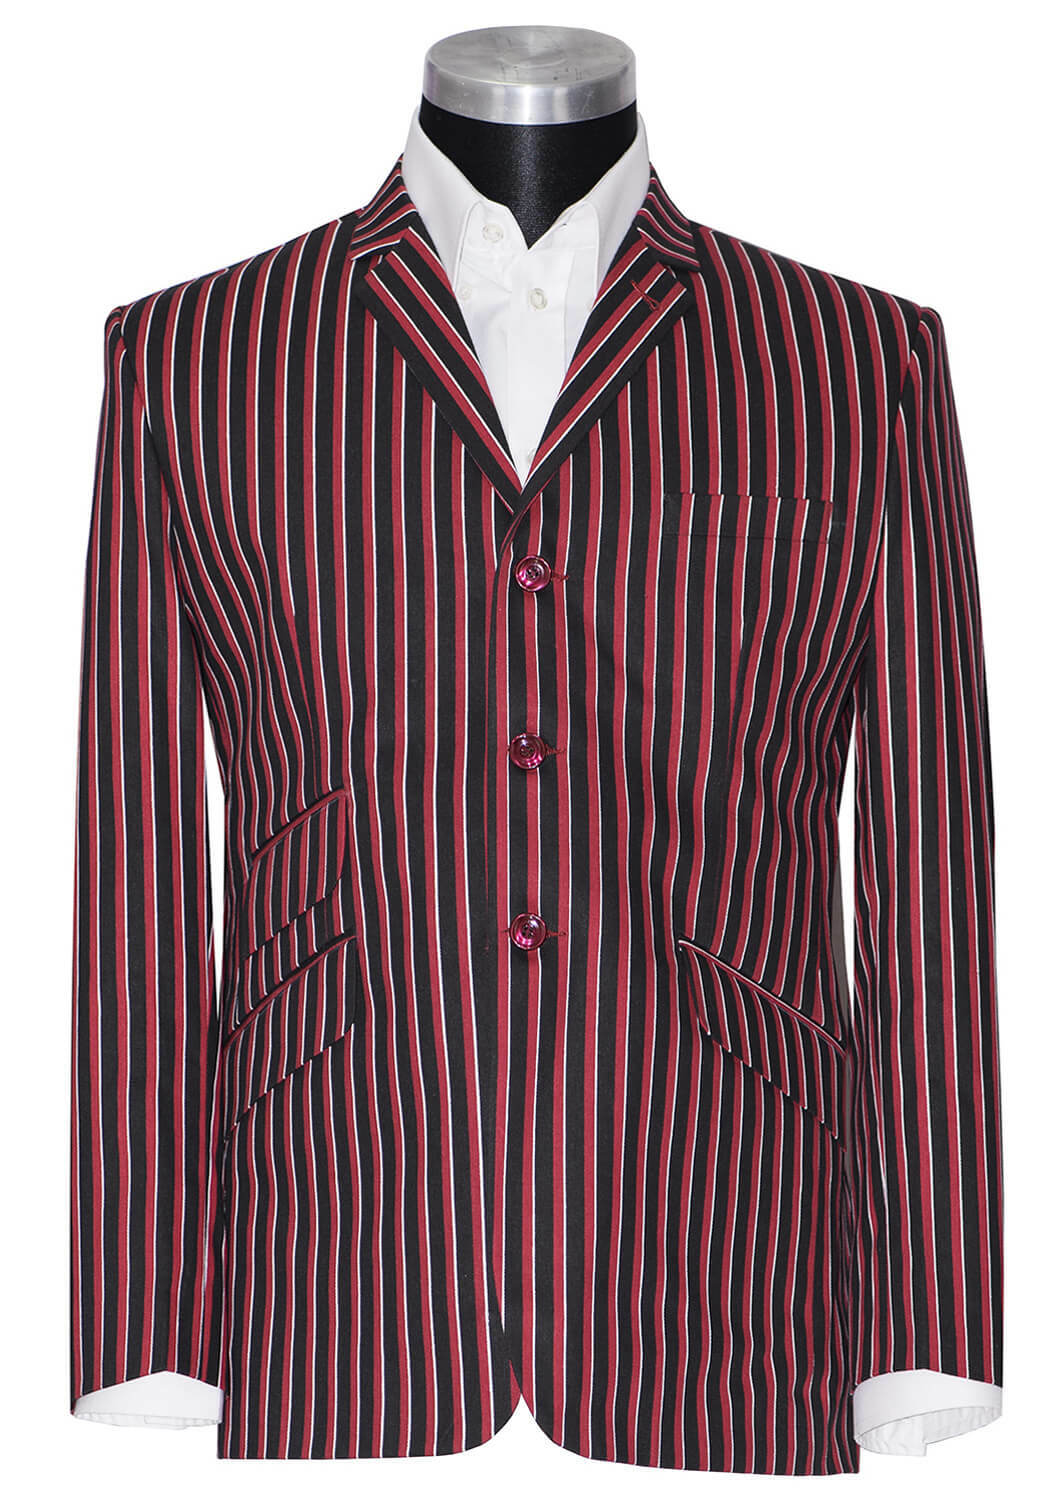 black-and-red-stripe-boating-blazer-73212.1616409952.jpg